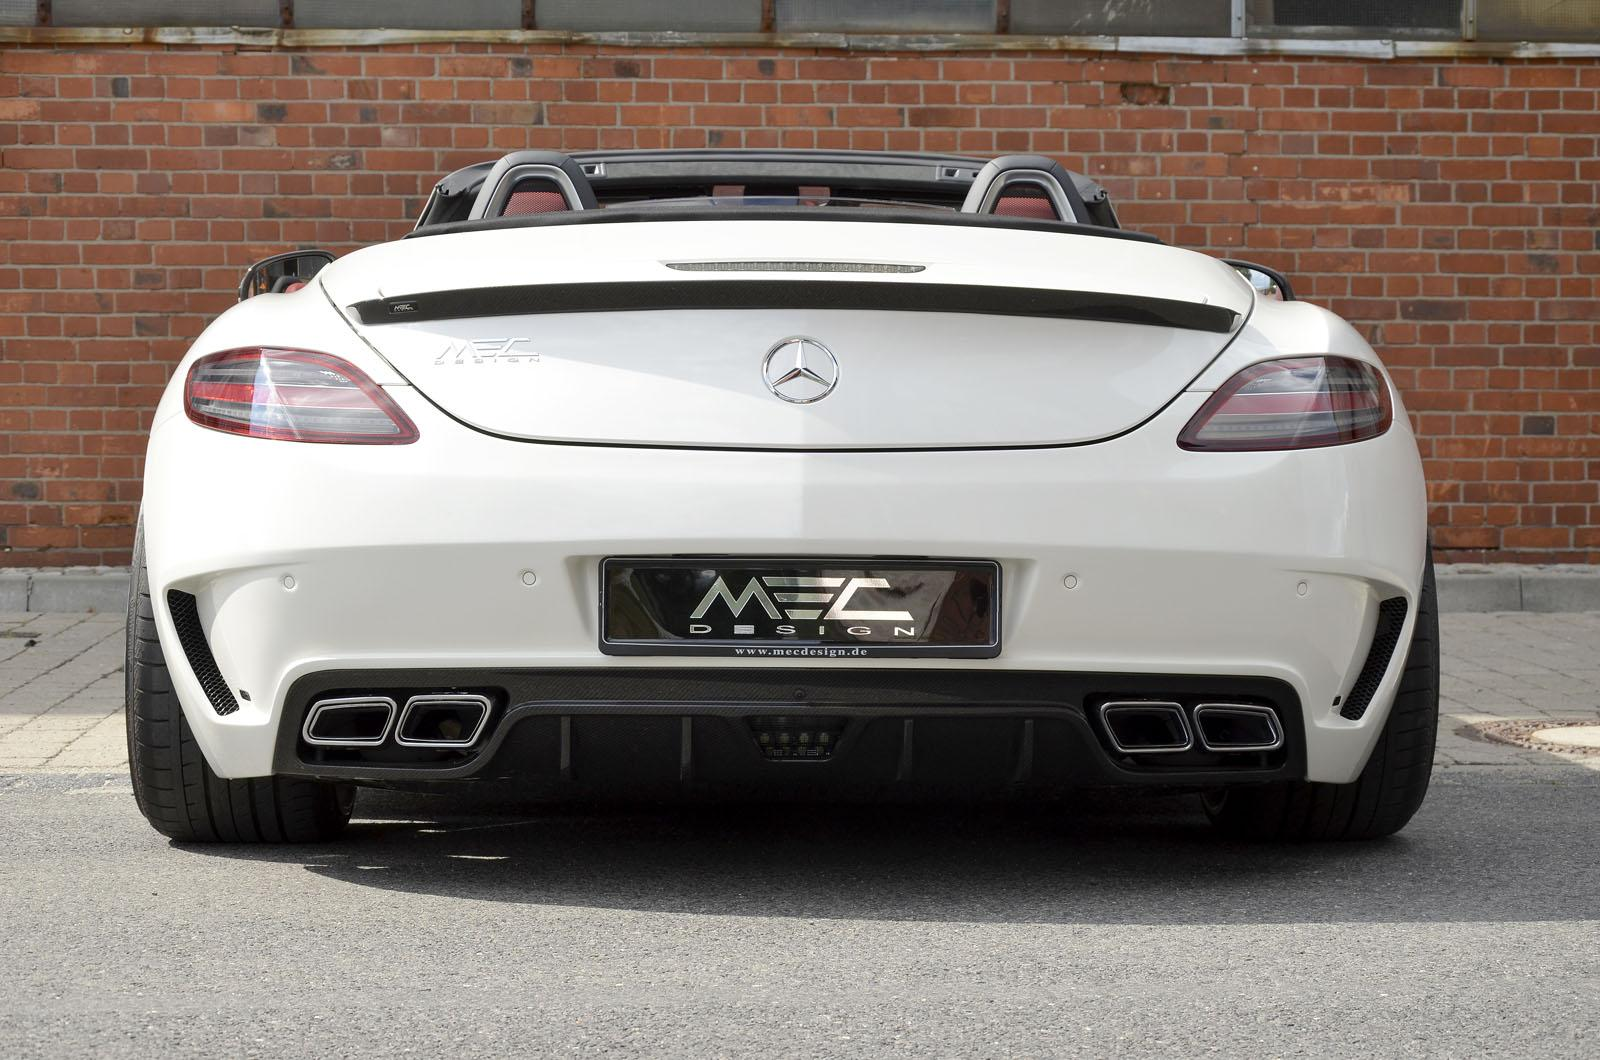 Amg Roadster Mercedes-benz Sls Amg Roadster